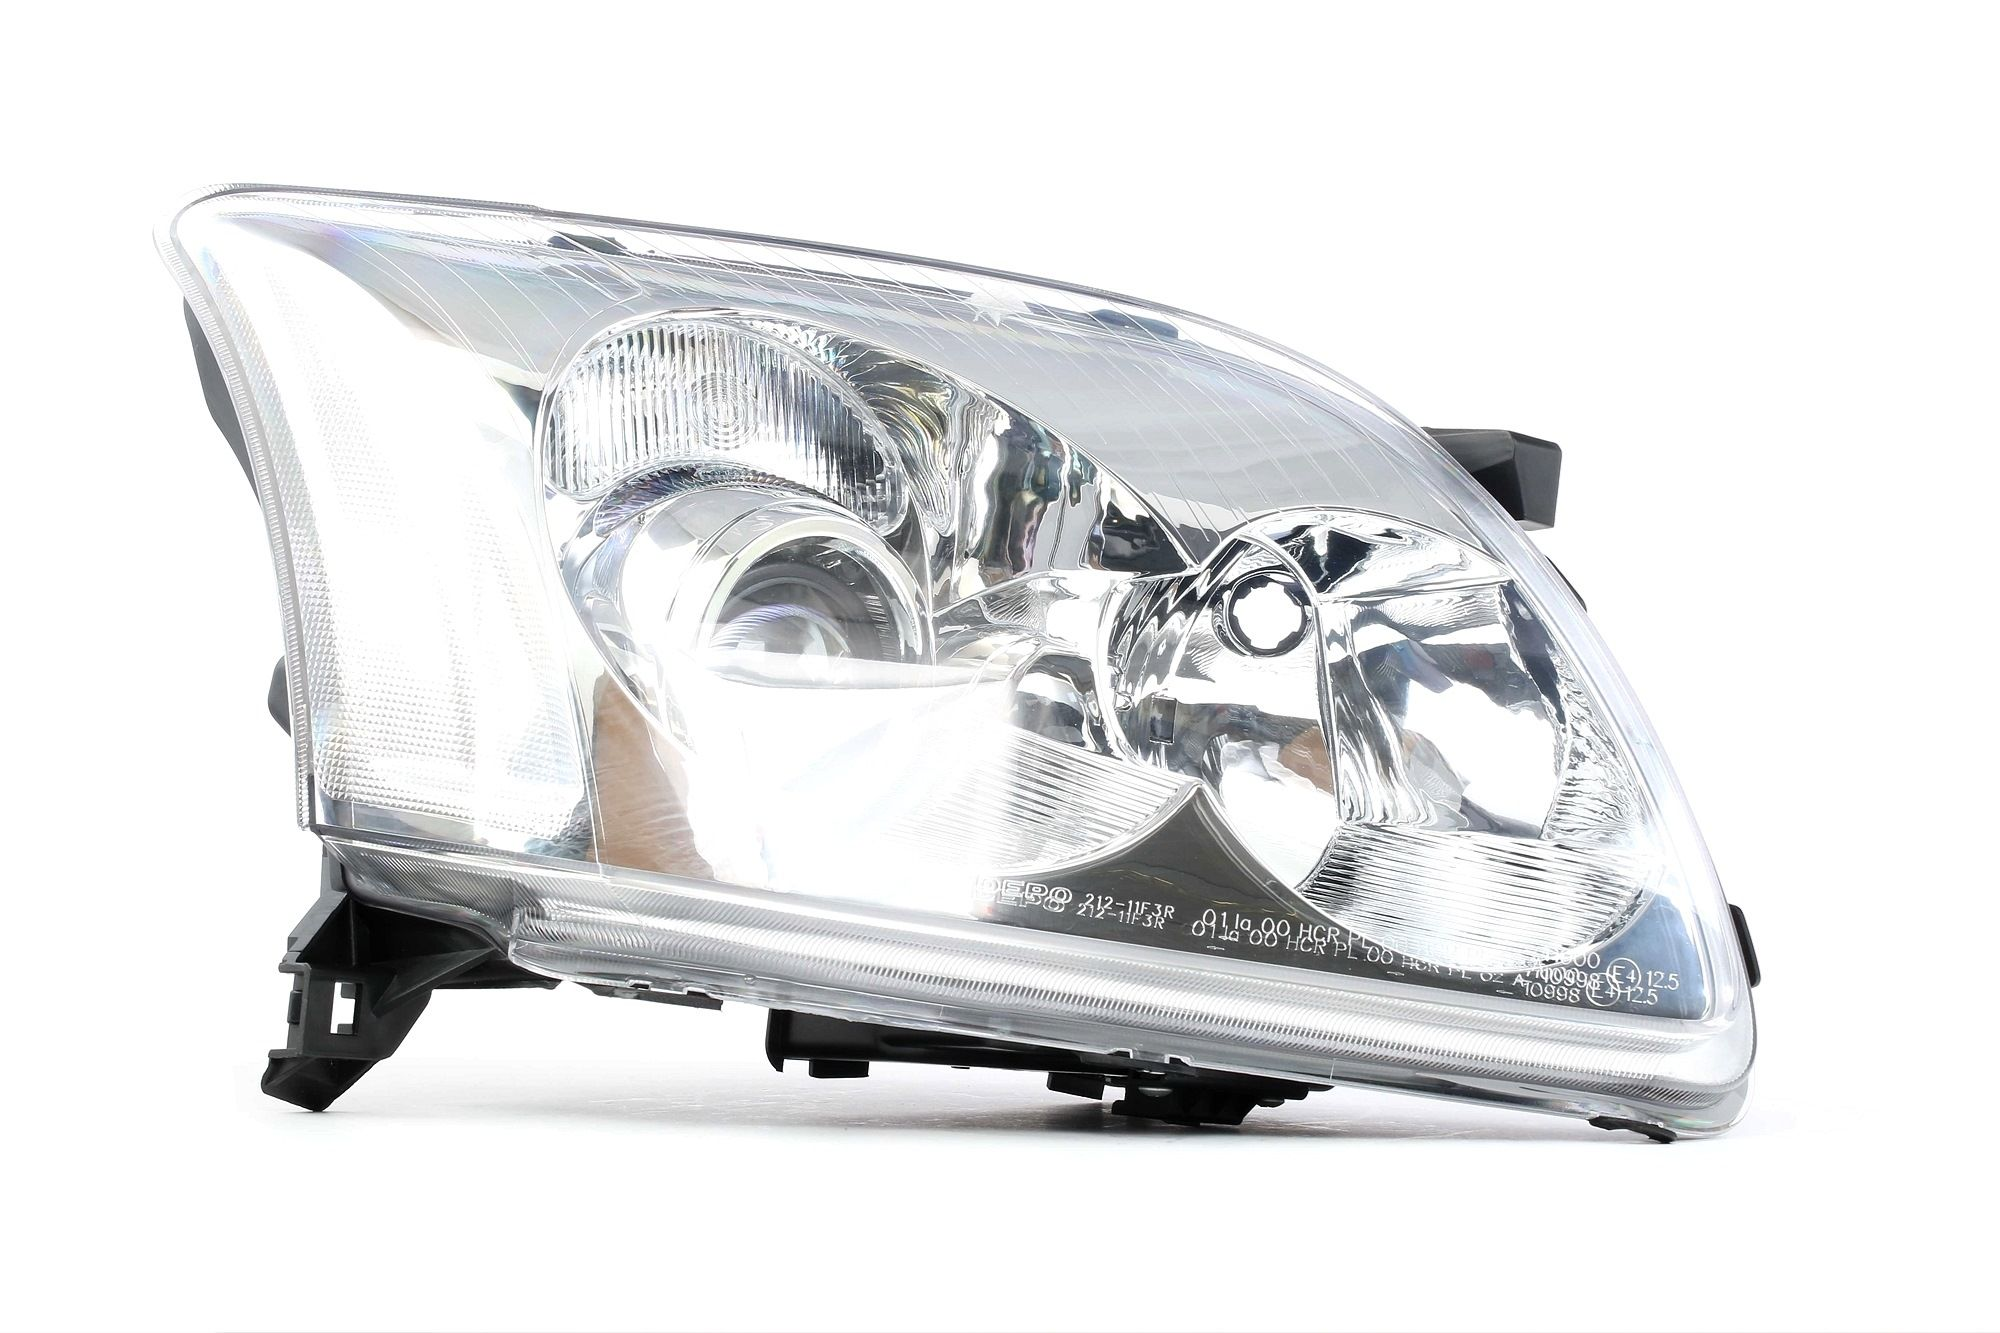 Headlamps 81 26 09 JOHNS — only new parts